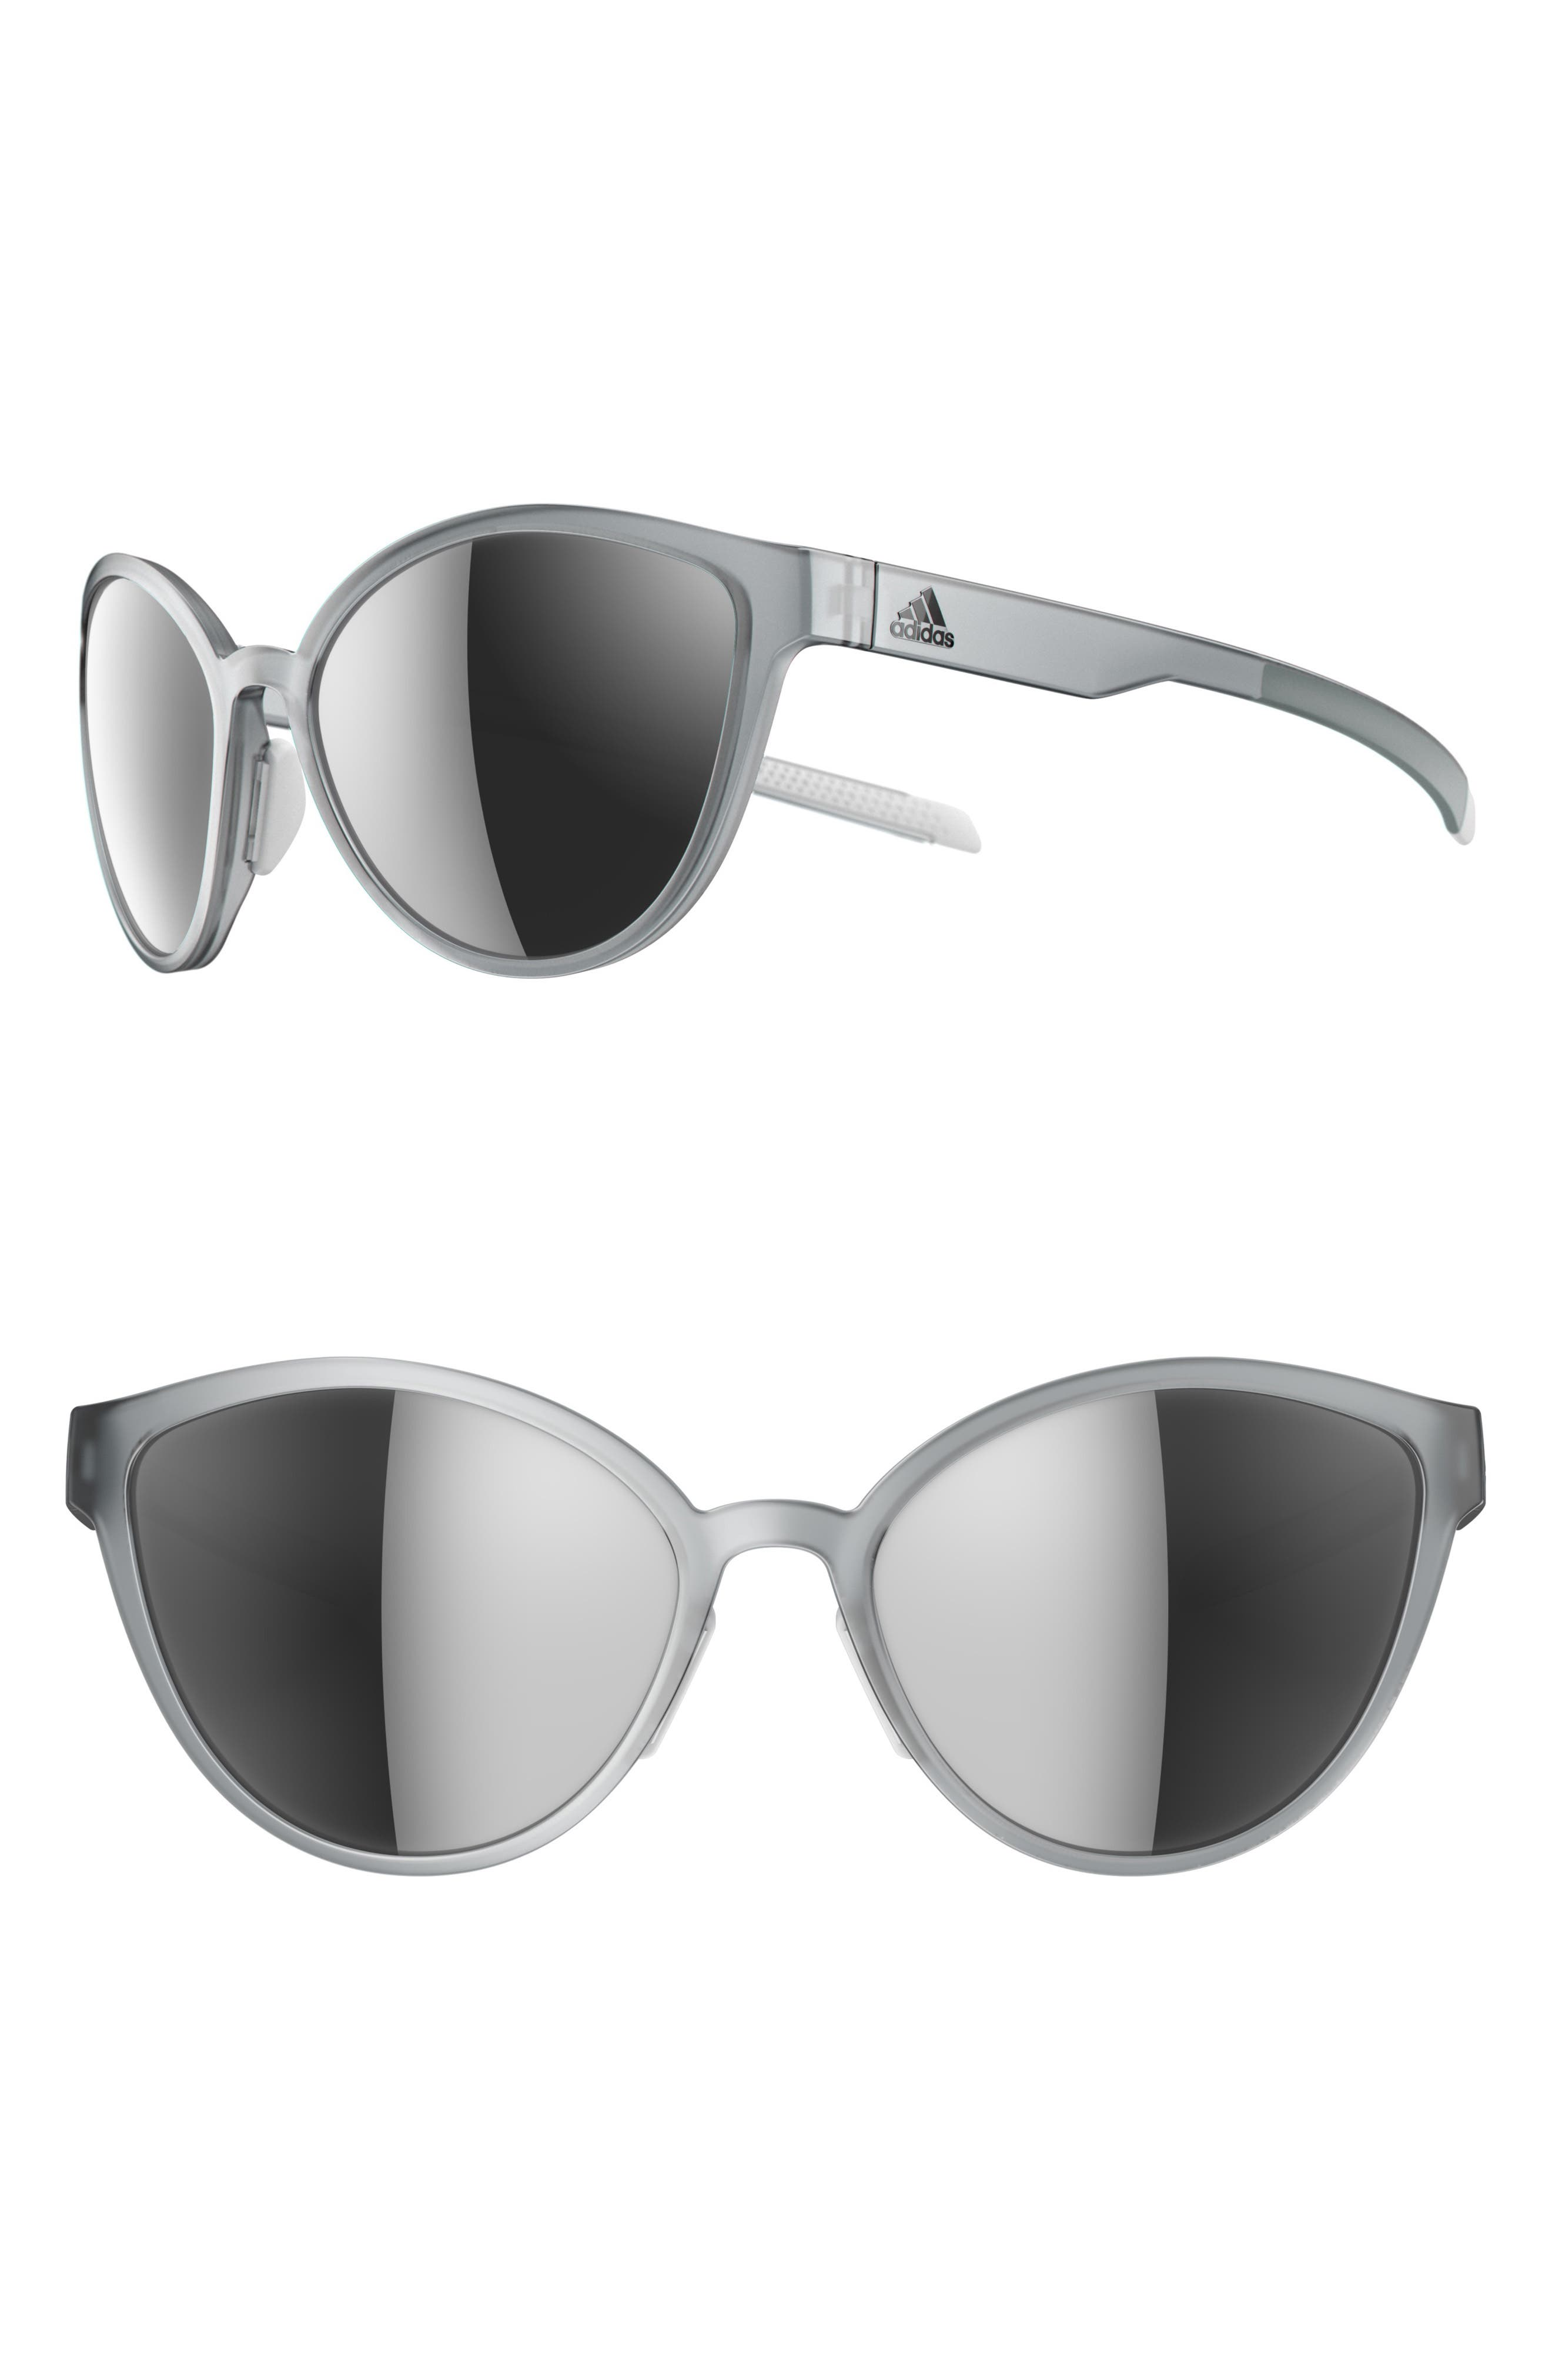 c9d9a493b132 Grey adidas Accessories for Women